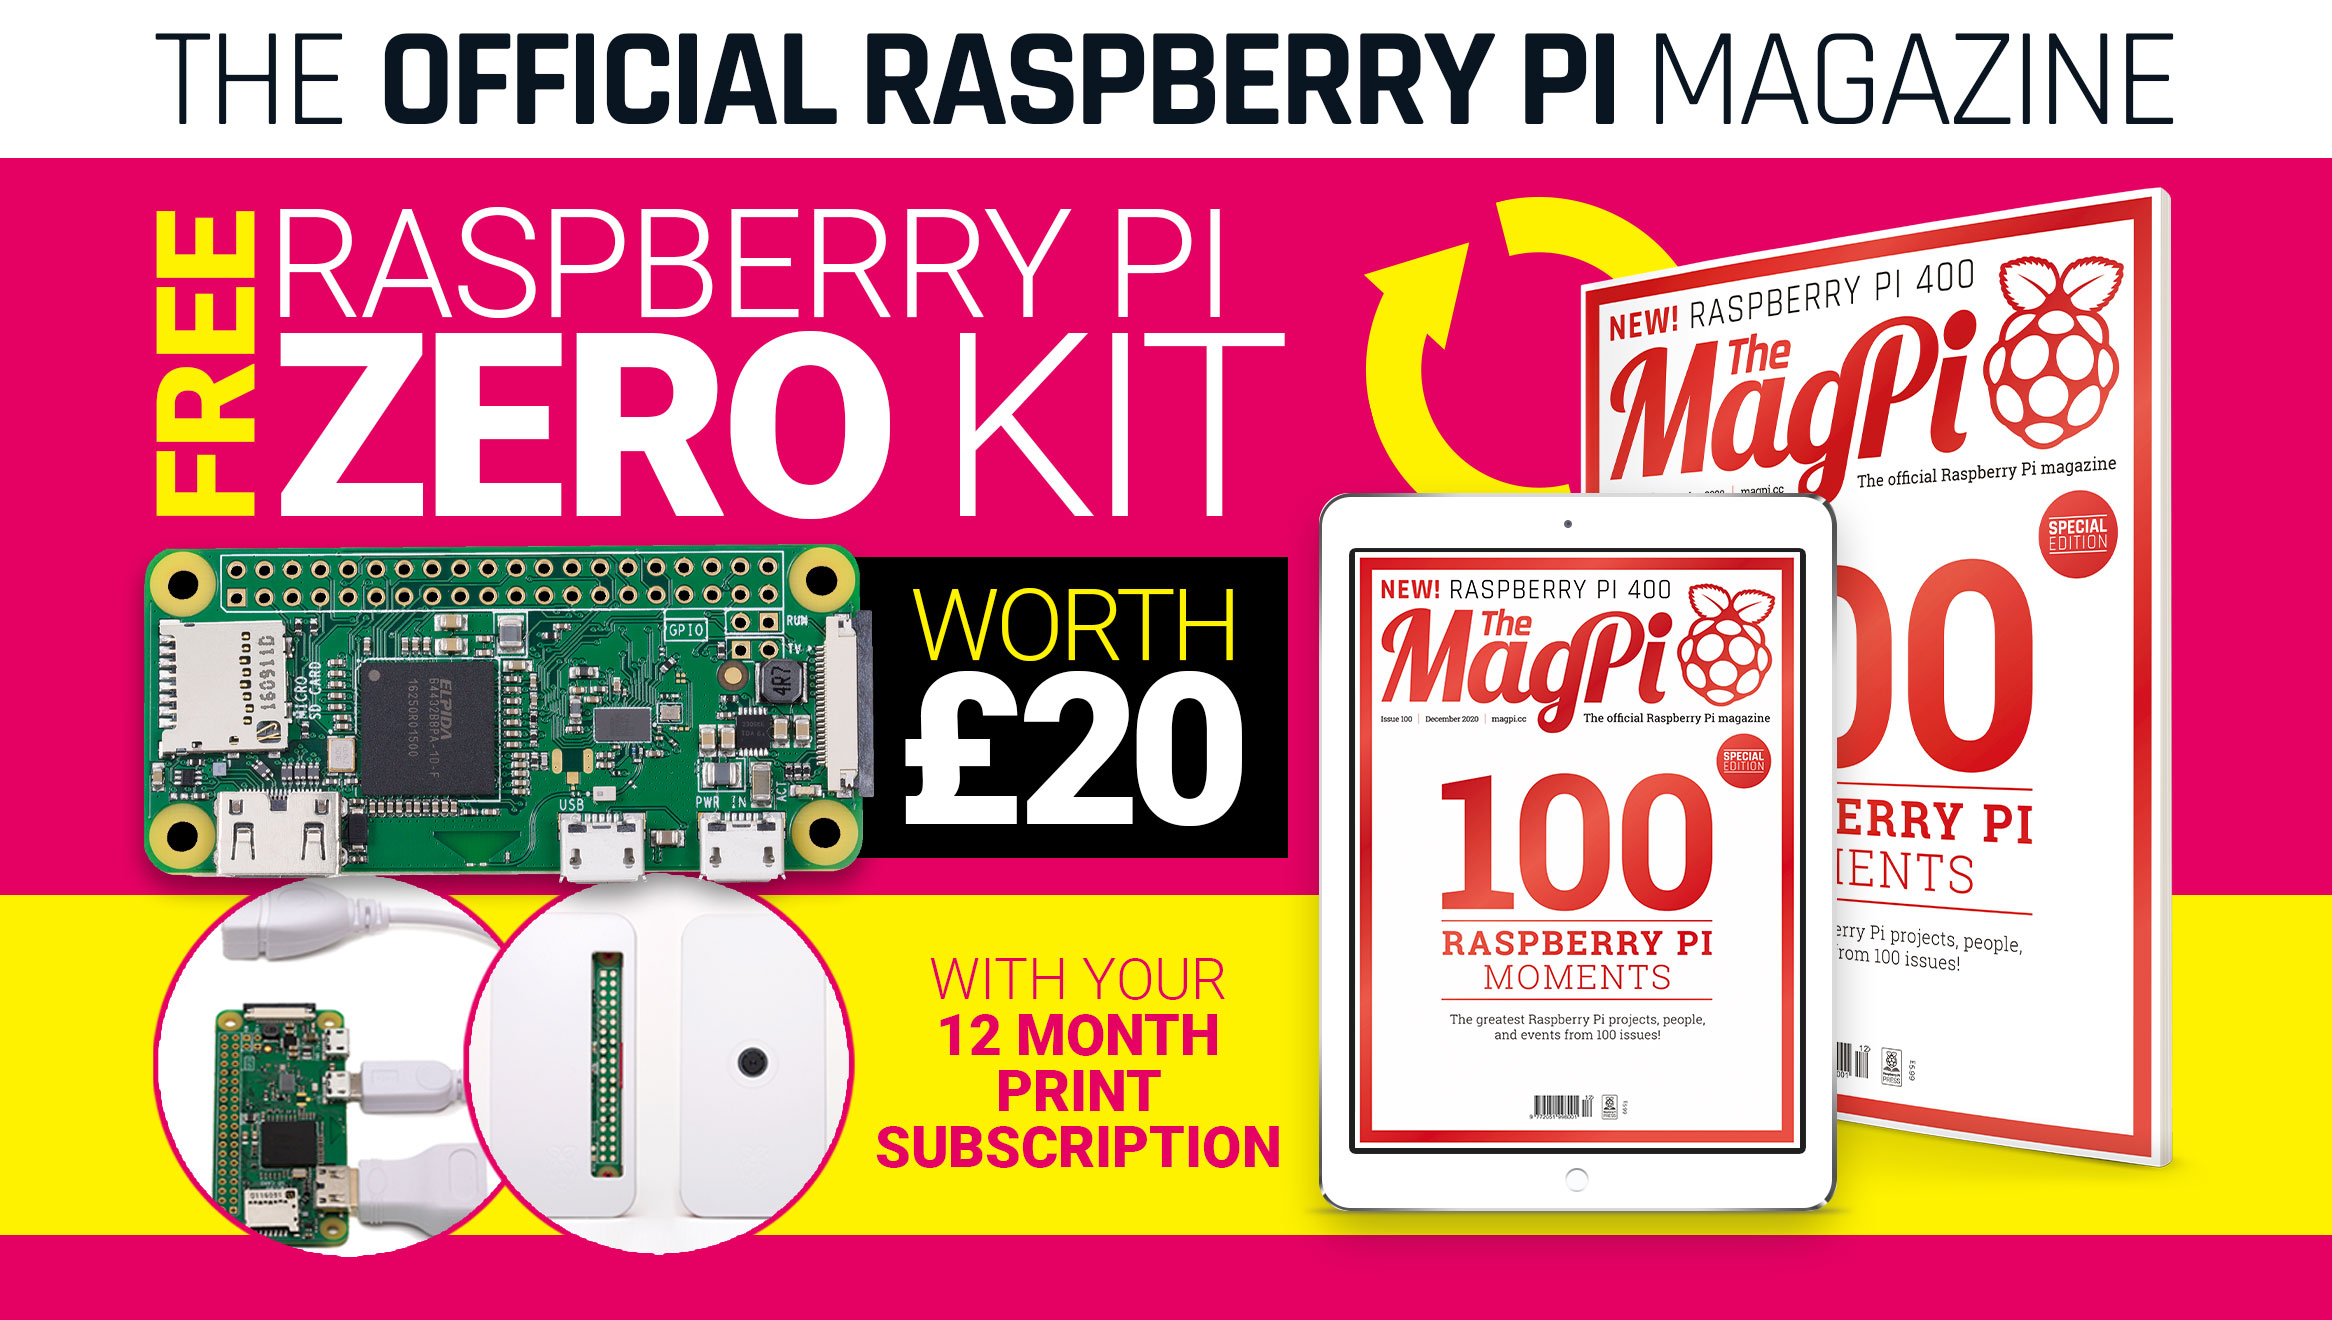 The MagPi issue 100 cover